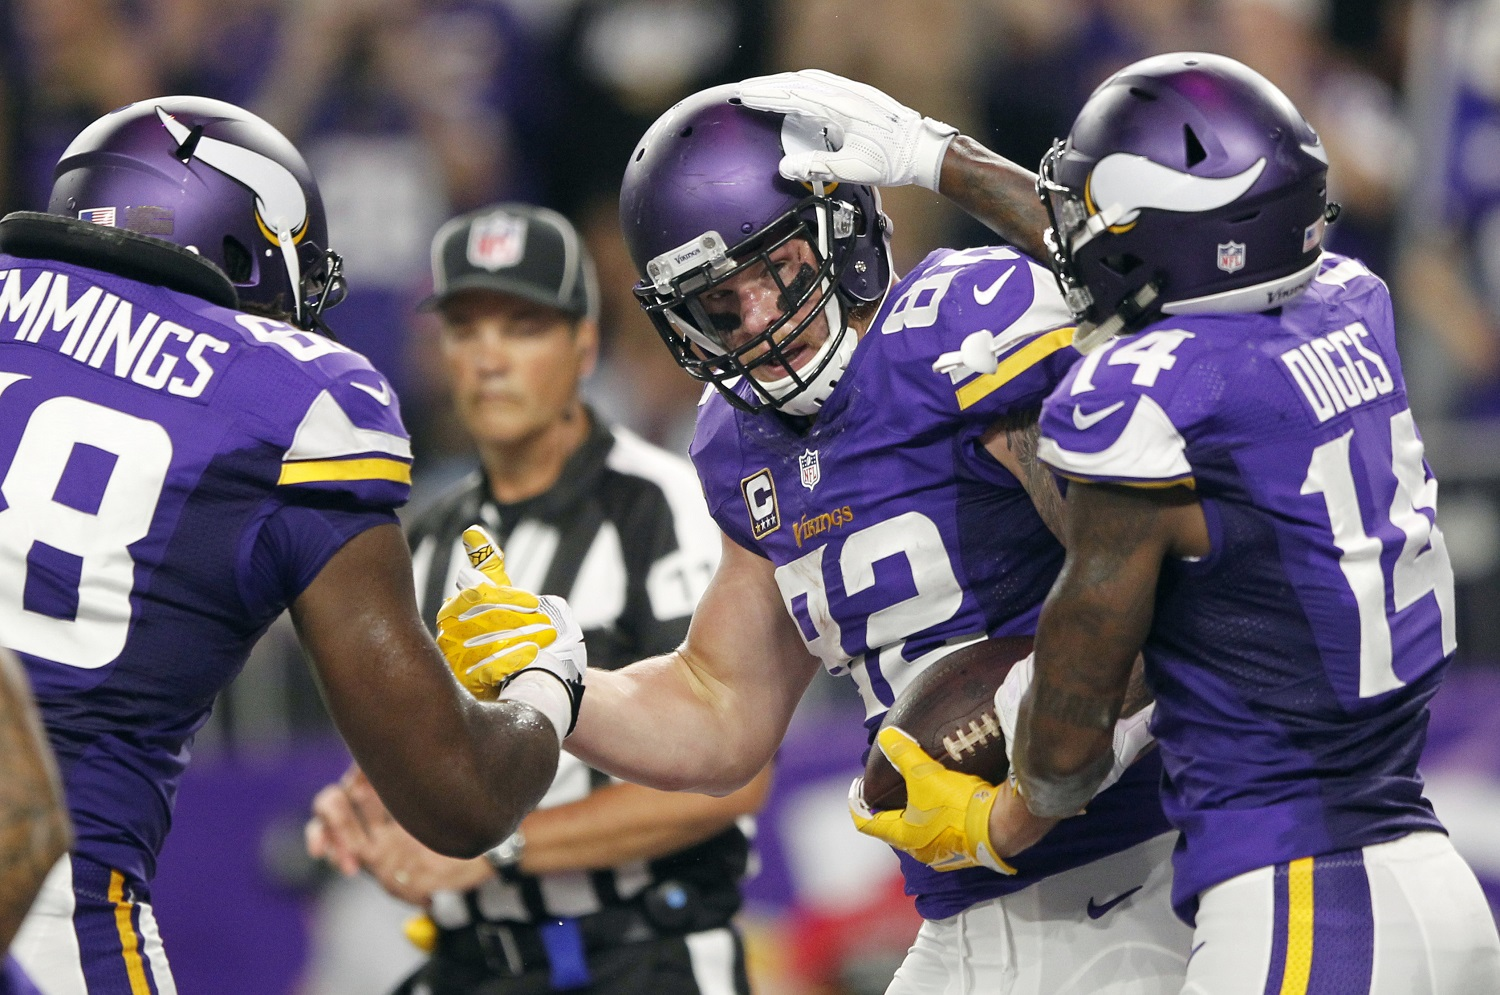 Minnesota Vikings tight end Kyle Rudolph, center, celebrates with teammates T.J. Clemmings, left, and Stefon Diggs, right, after catching a 7-yard touchdown pass during the first half of an NFL football game against the New York Giants on Monday, Oct. 3, 2016, in Minneapolis. (AP Photo/Andy Clayton-King)